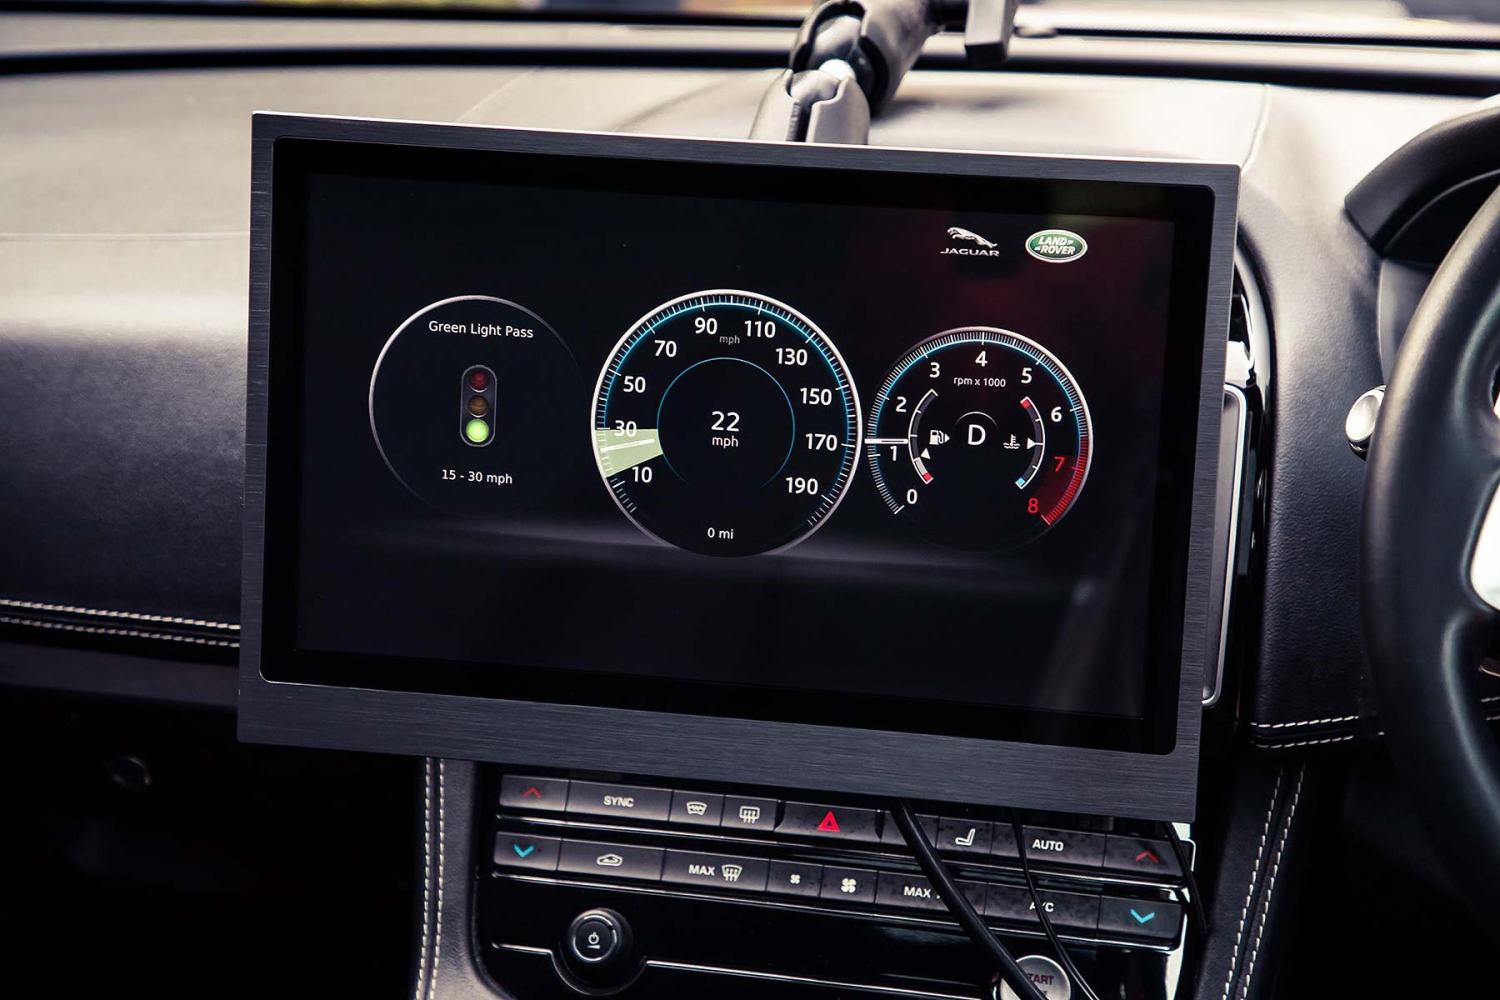 JLR future tech will advise the best speed to avoid red traffic lights